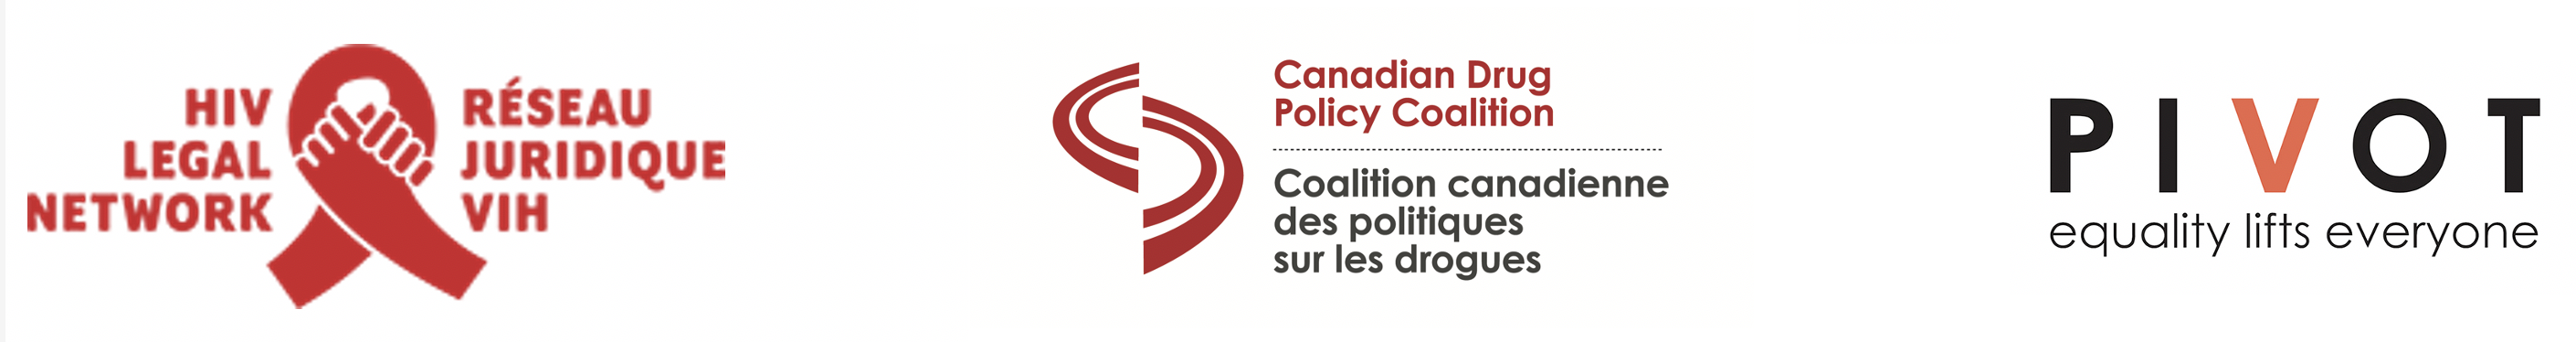 graphic with the logos of: HIV Legal Network, Canadian Drug Policy Coalition, Pivot Legal Society